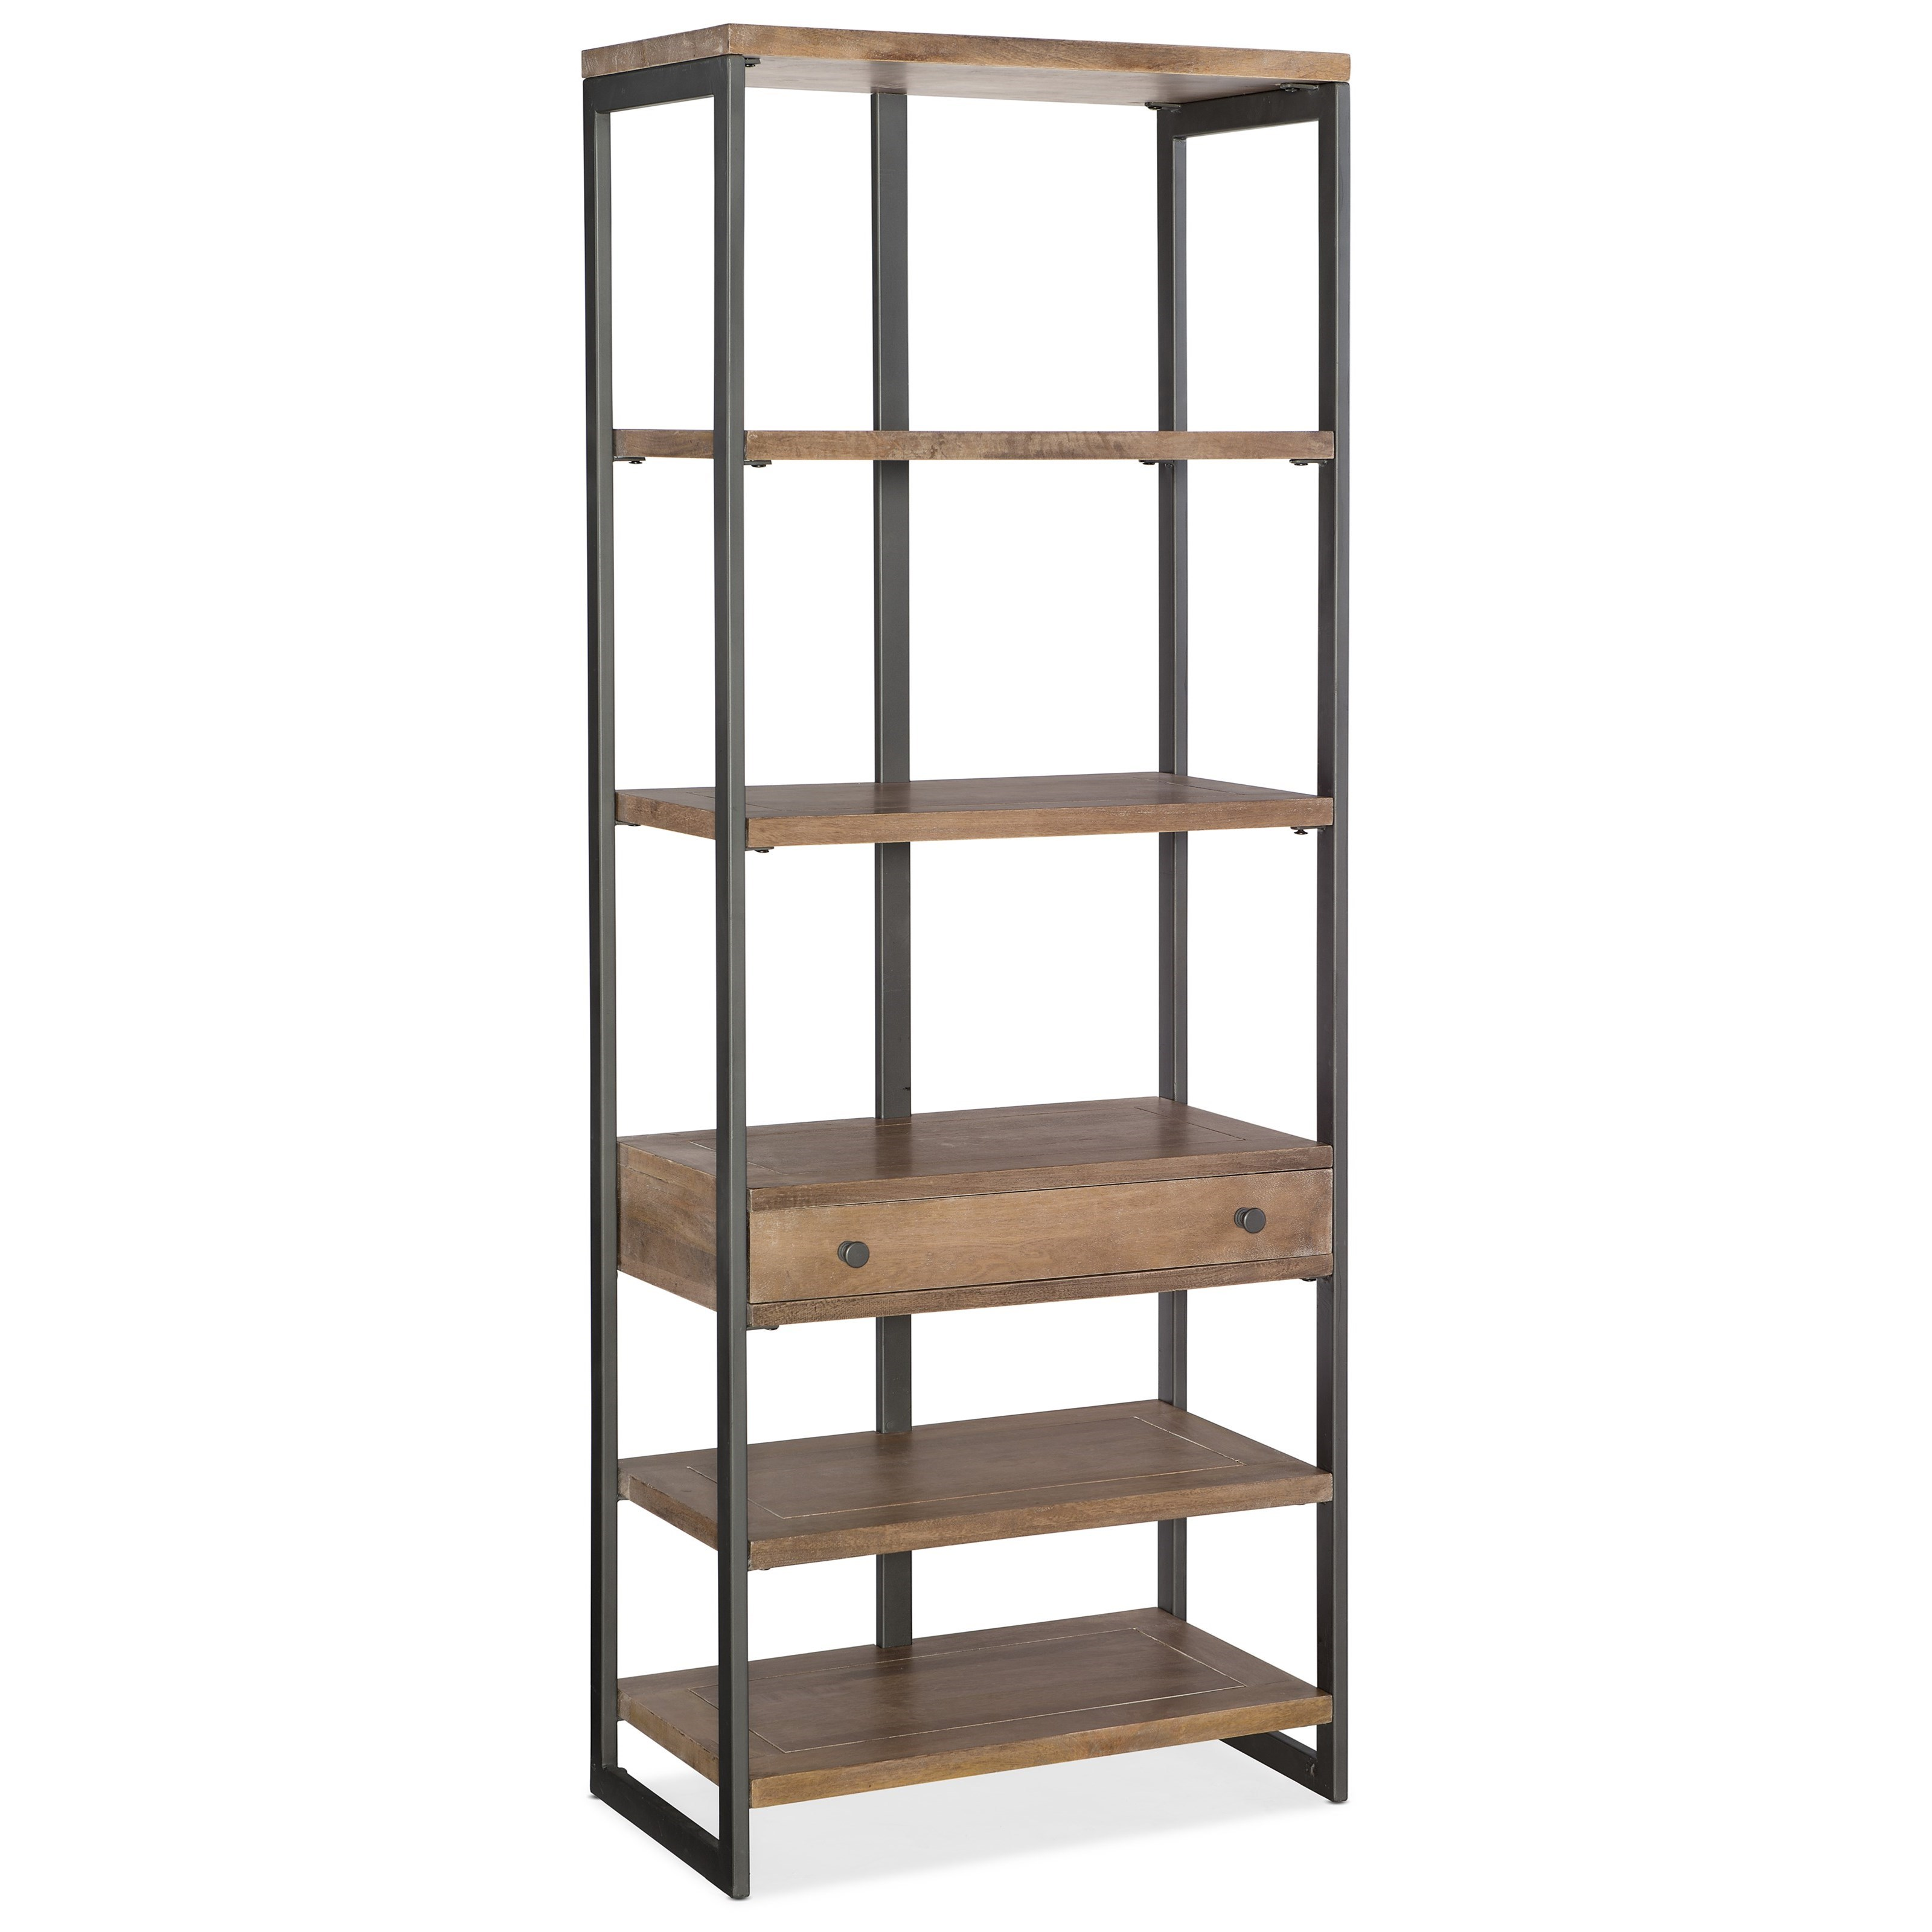 5681-10 Bookcase by Hooker Furniture at Esprit Decor Home Furnishings